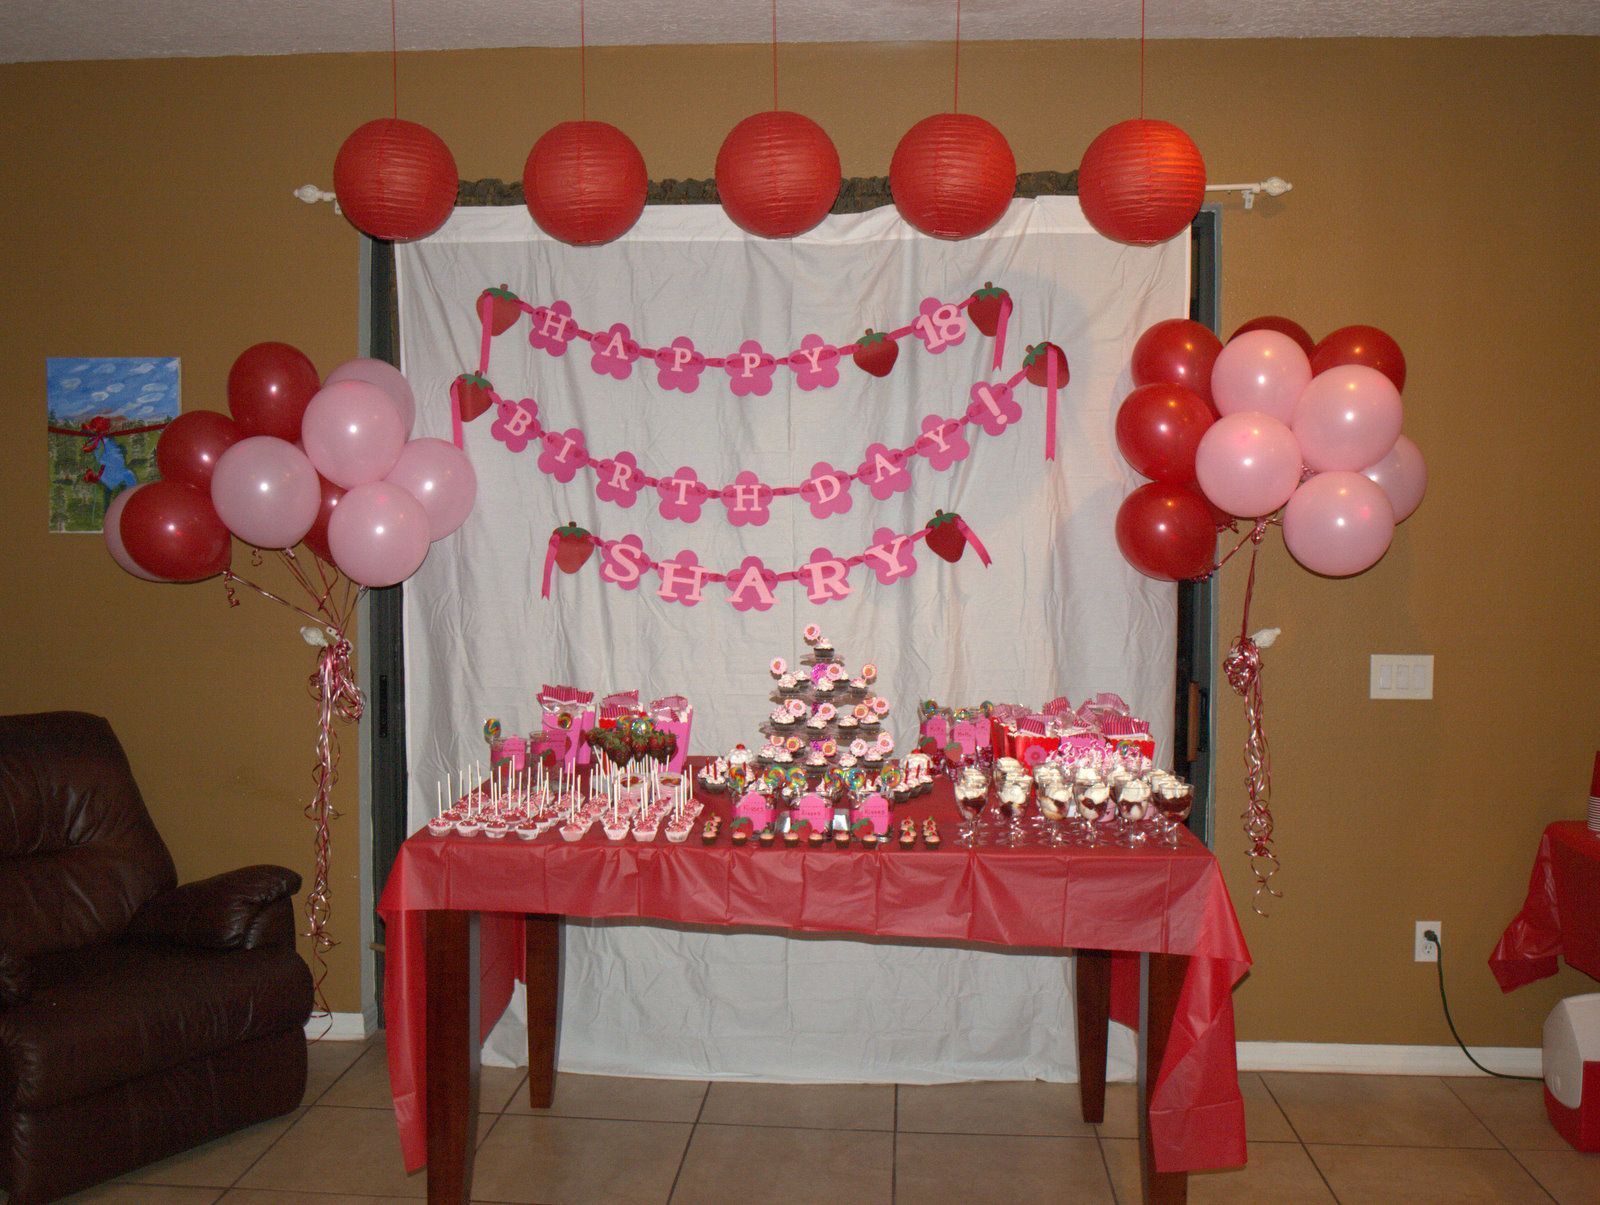 90 Awesome Simple Birthday Table Decoration Ideas 18th Birthday